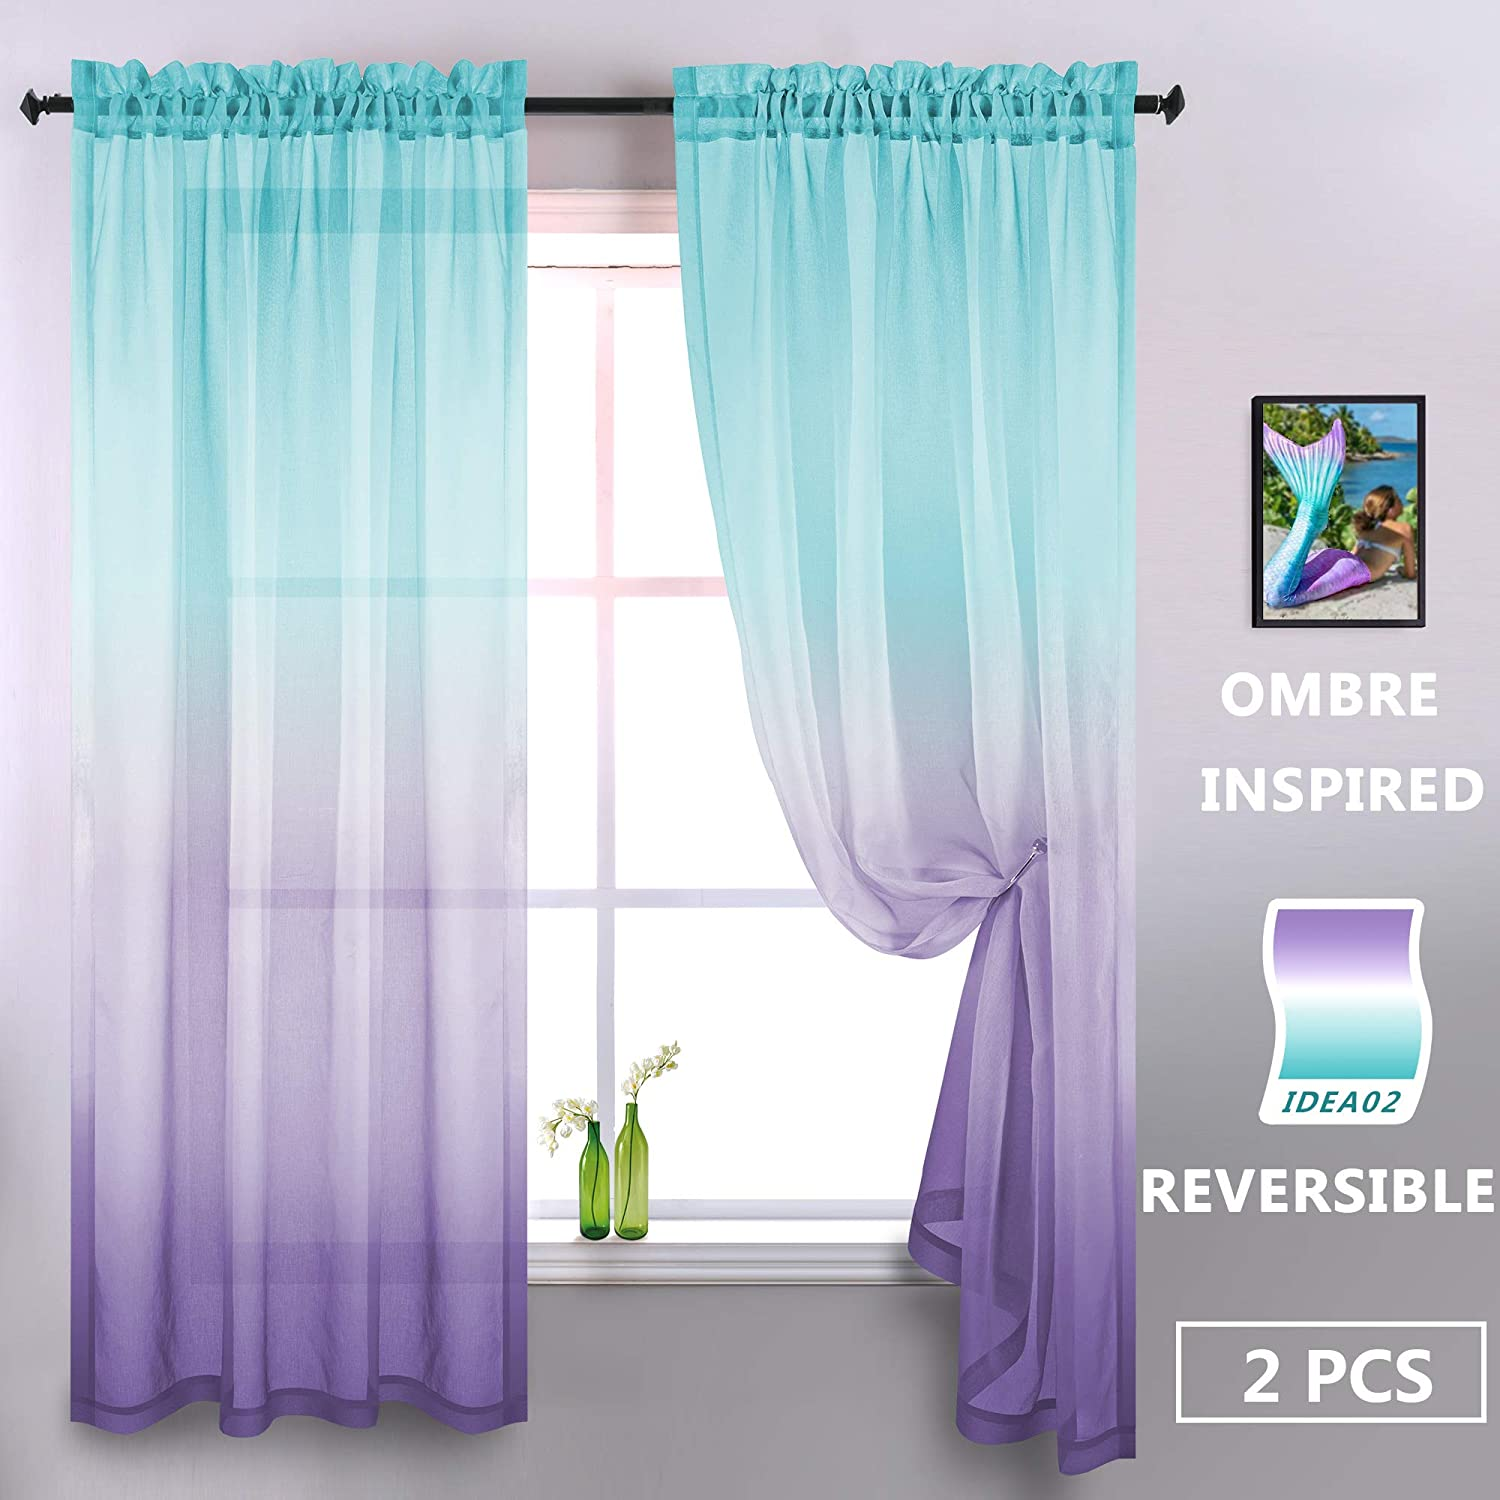 Lilac and Turquoise Curtains for Girls Room Decor Set of 2 Panels Pretty Window Sheer Ombre Patterned Fantasy Curtains for Bedroom Teen Mermaid Wall Decoration Accessories Green and Purple 72 Length